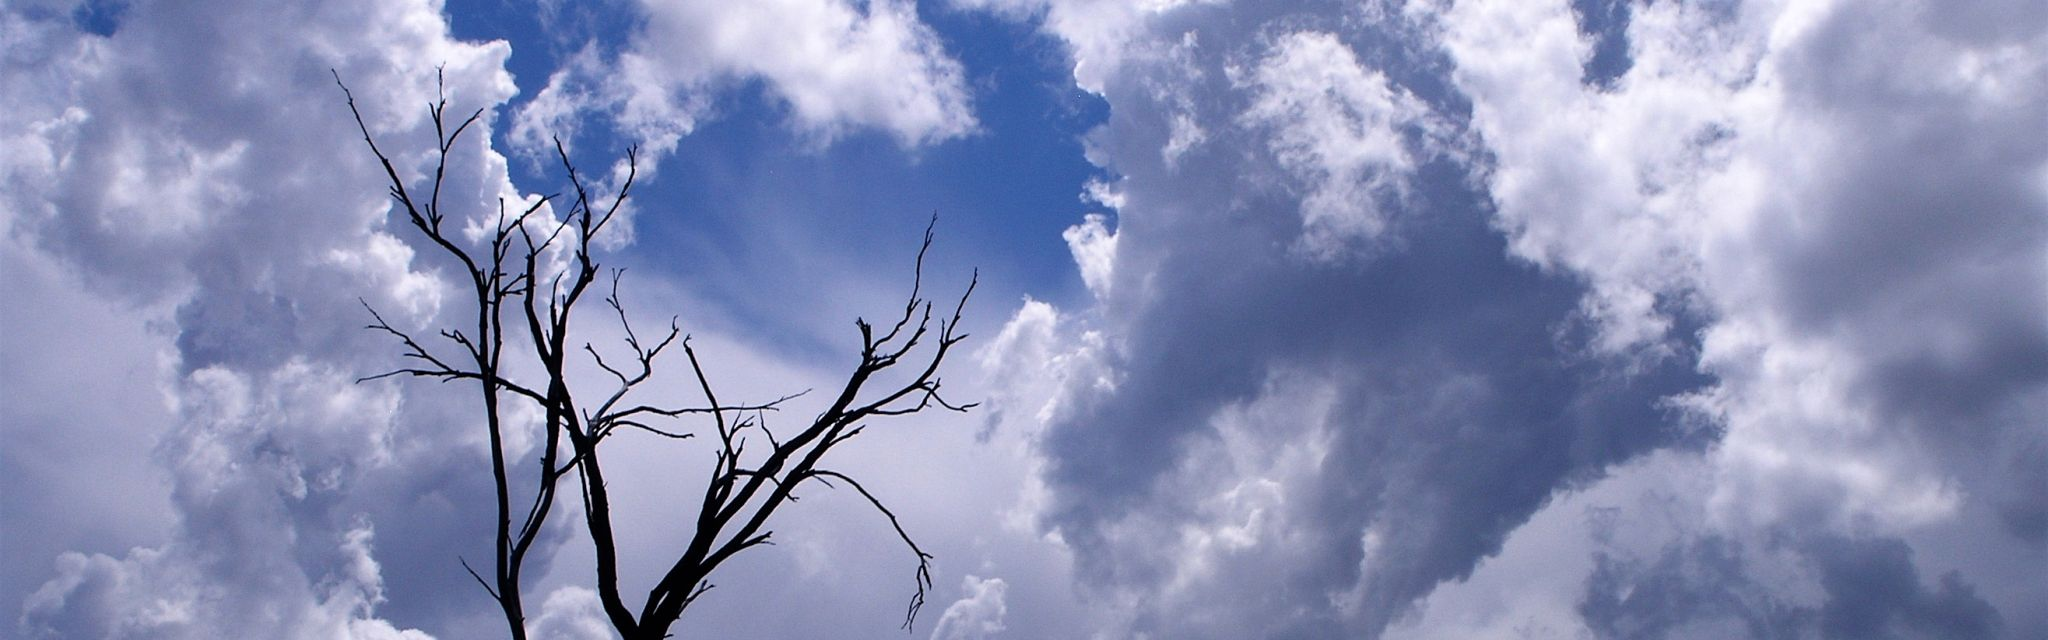 Tree reaching for the rain clouds, image from a Nature Bound Australia tour